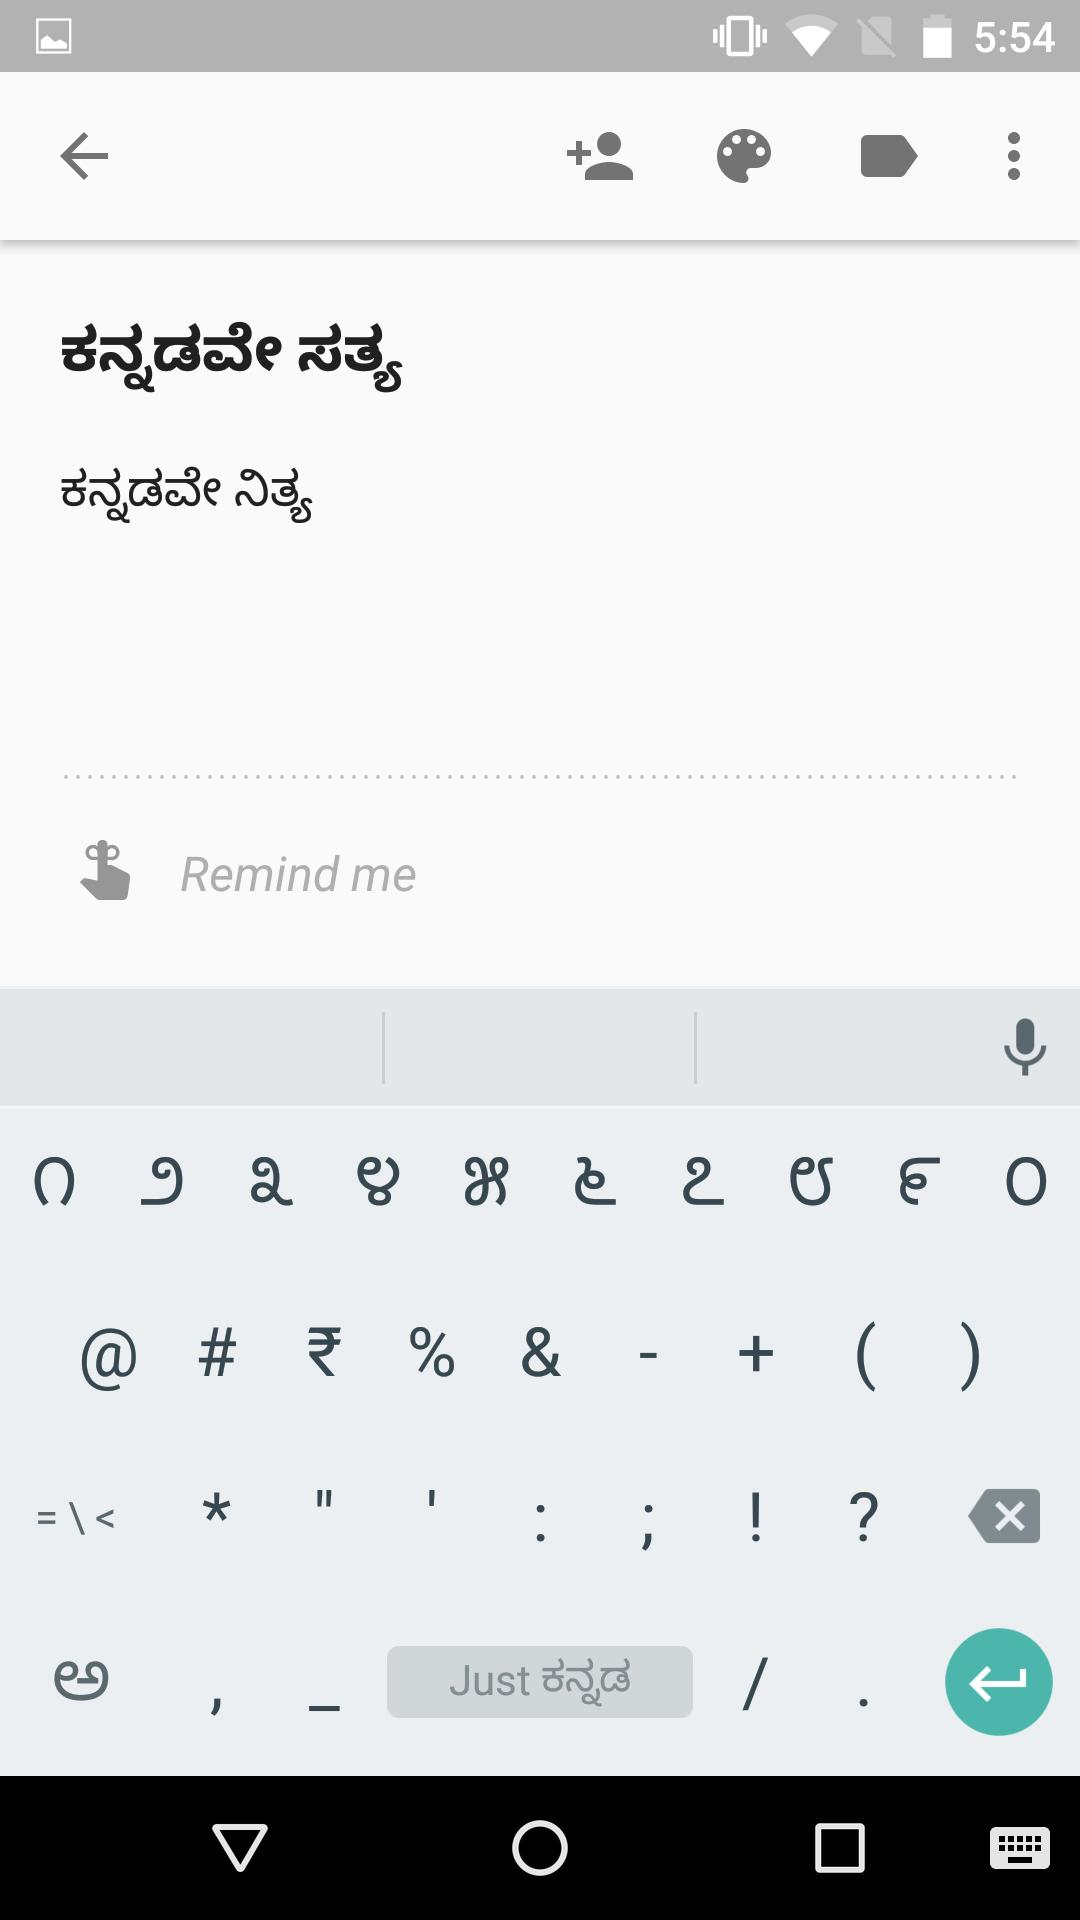 Just Kannada Keyboard for Android - APK Download